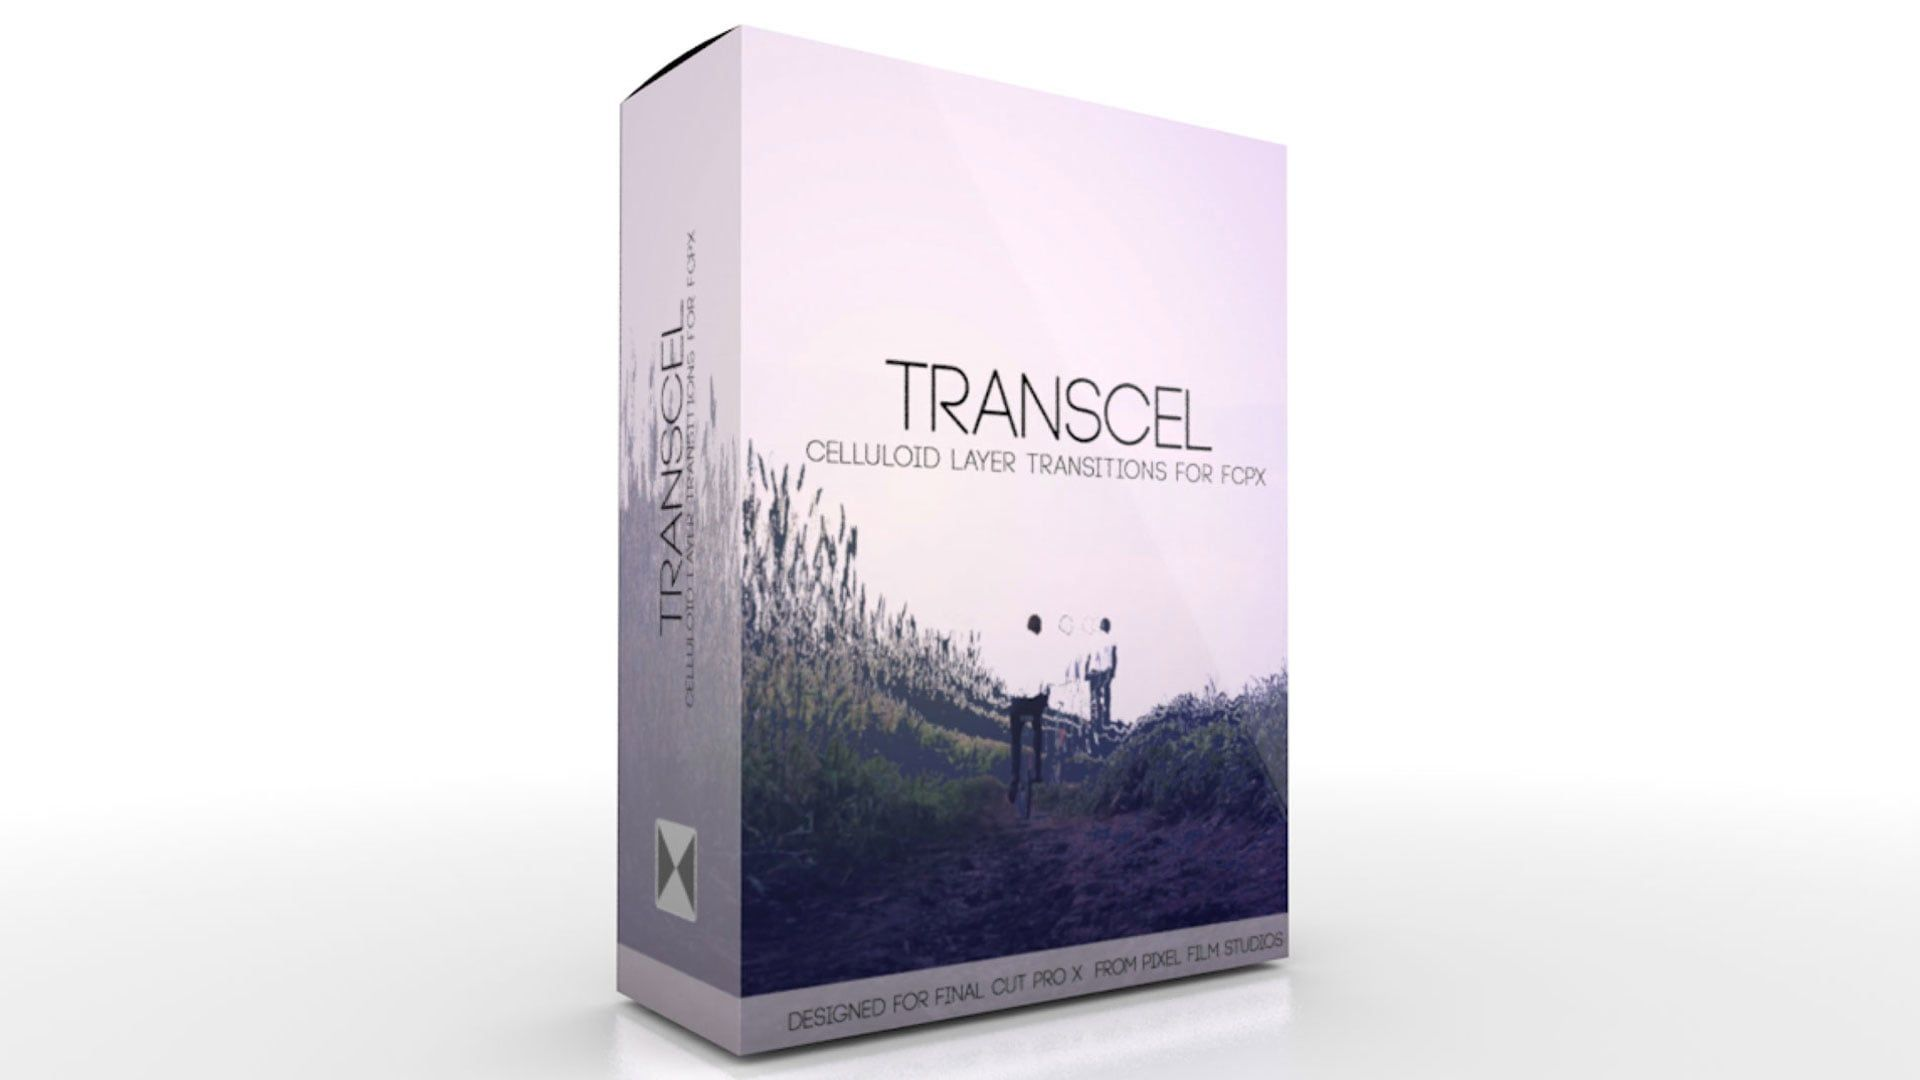 TransCel Celluloid Layer Transitions for FCPX from Pixel